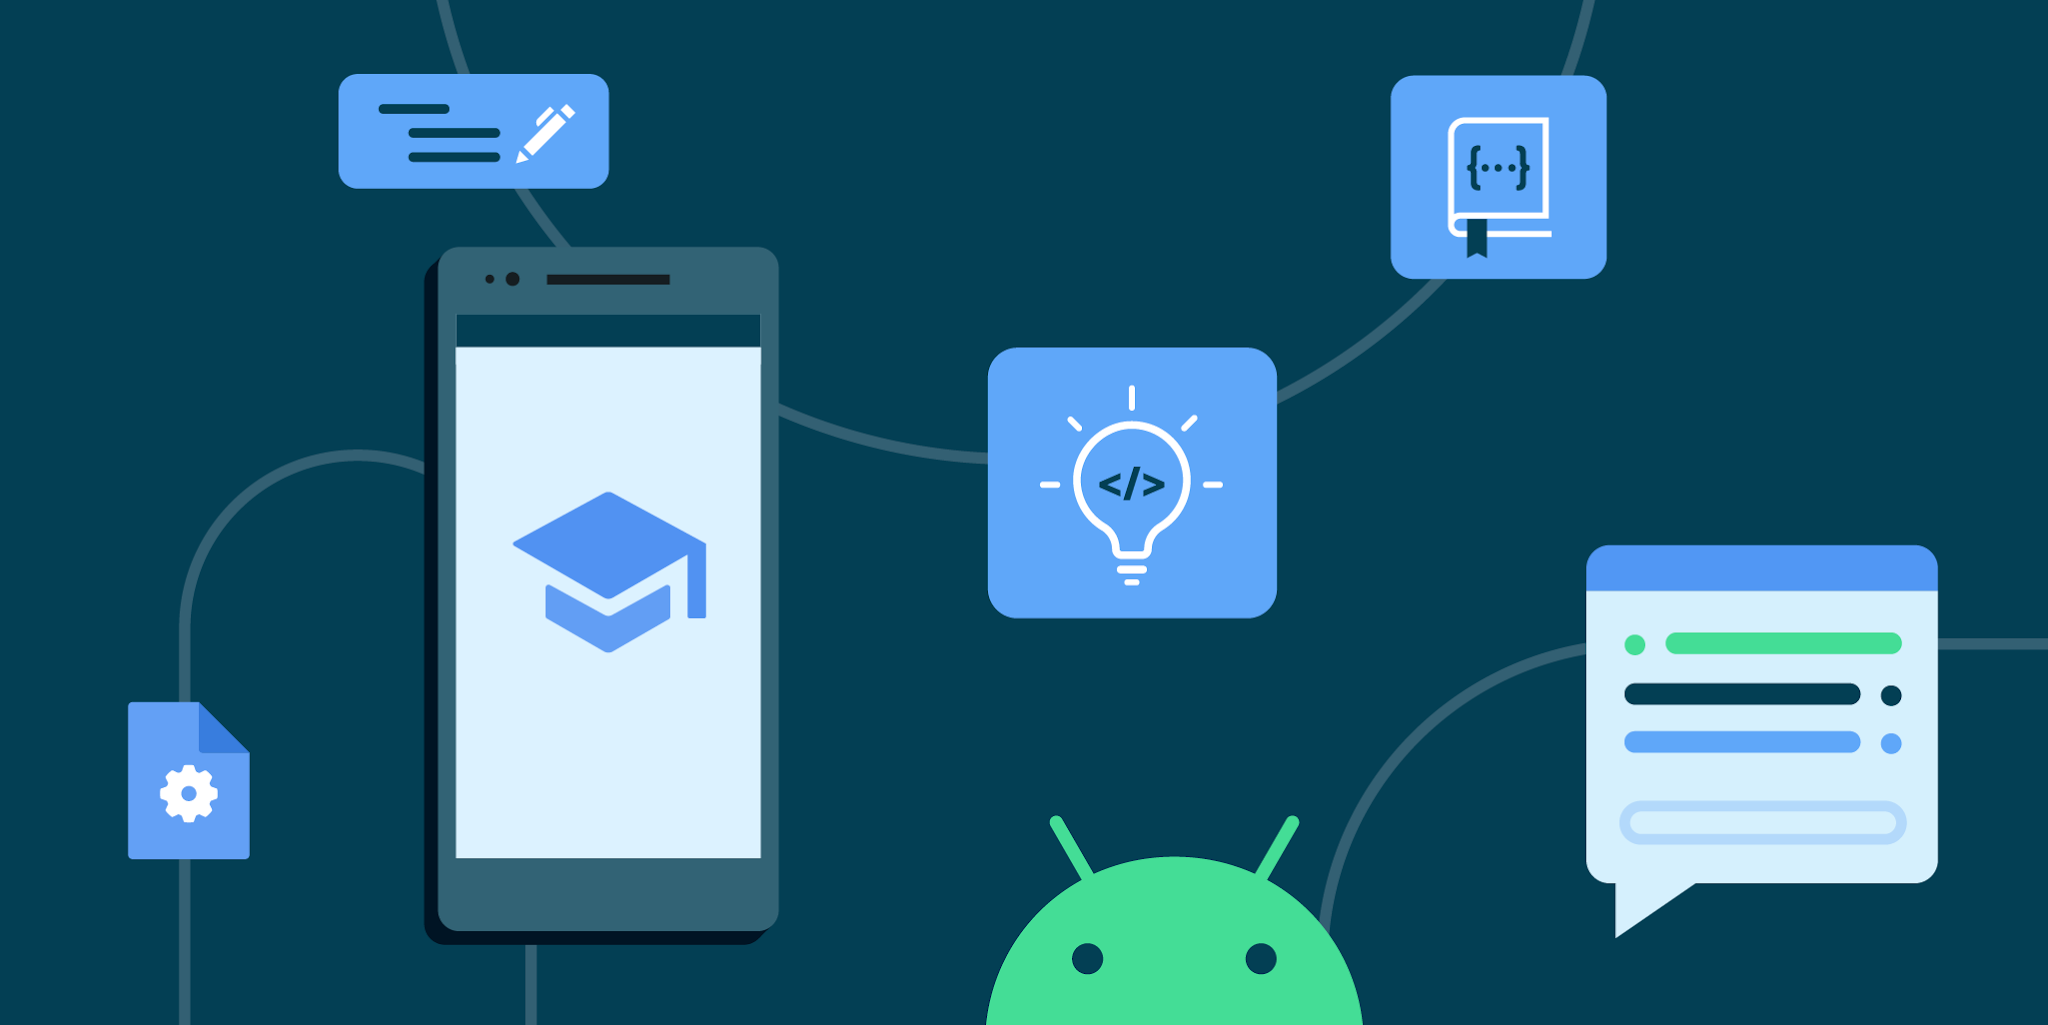 Android Developers Blog: New curriculum for educators to teach Android app development